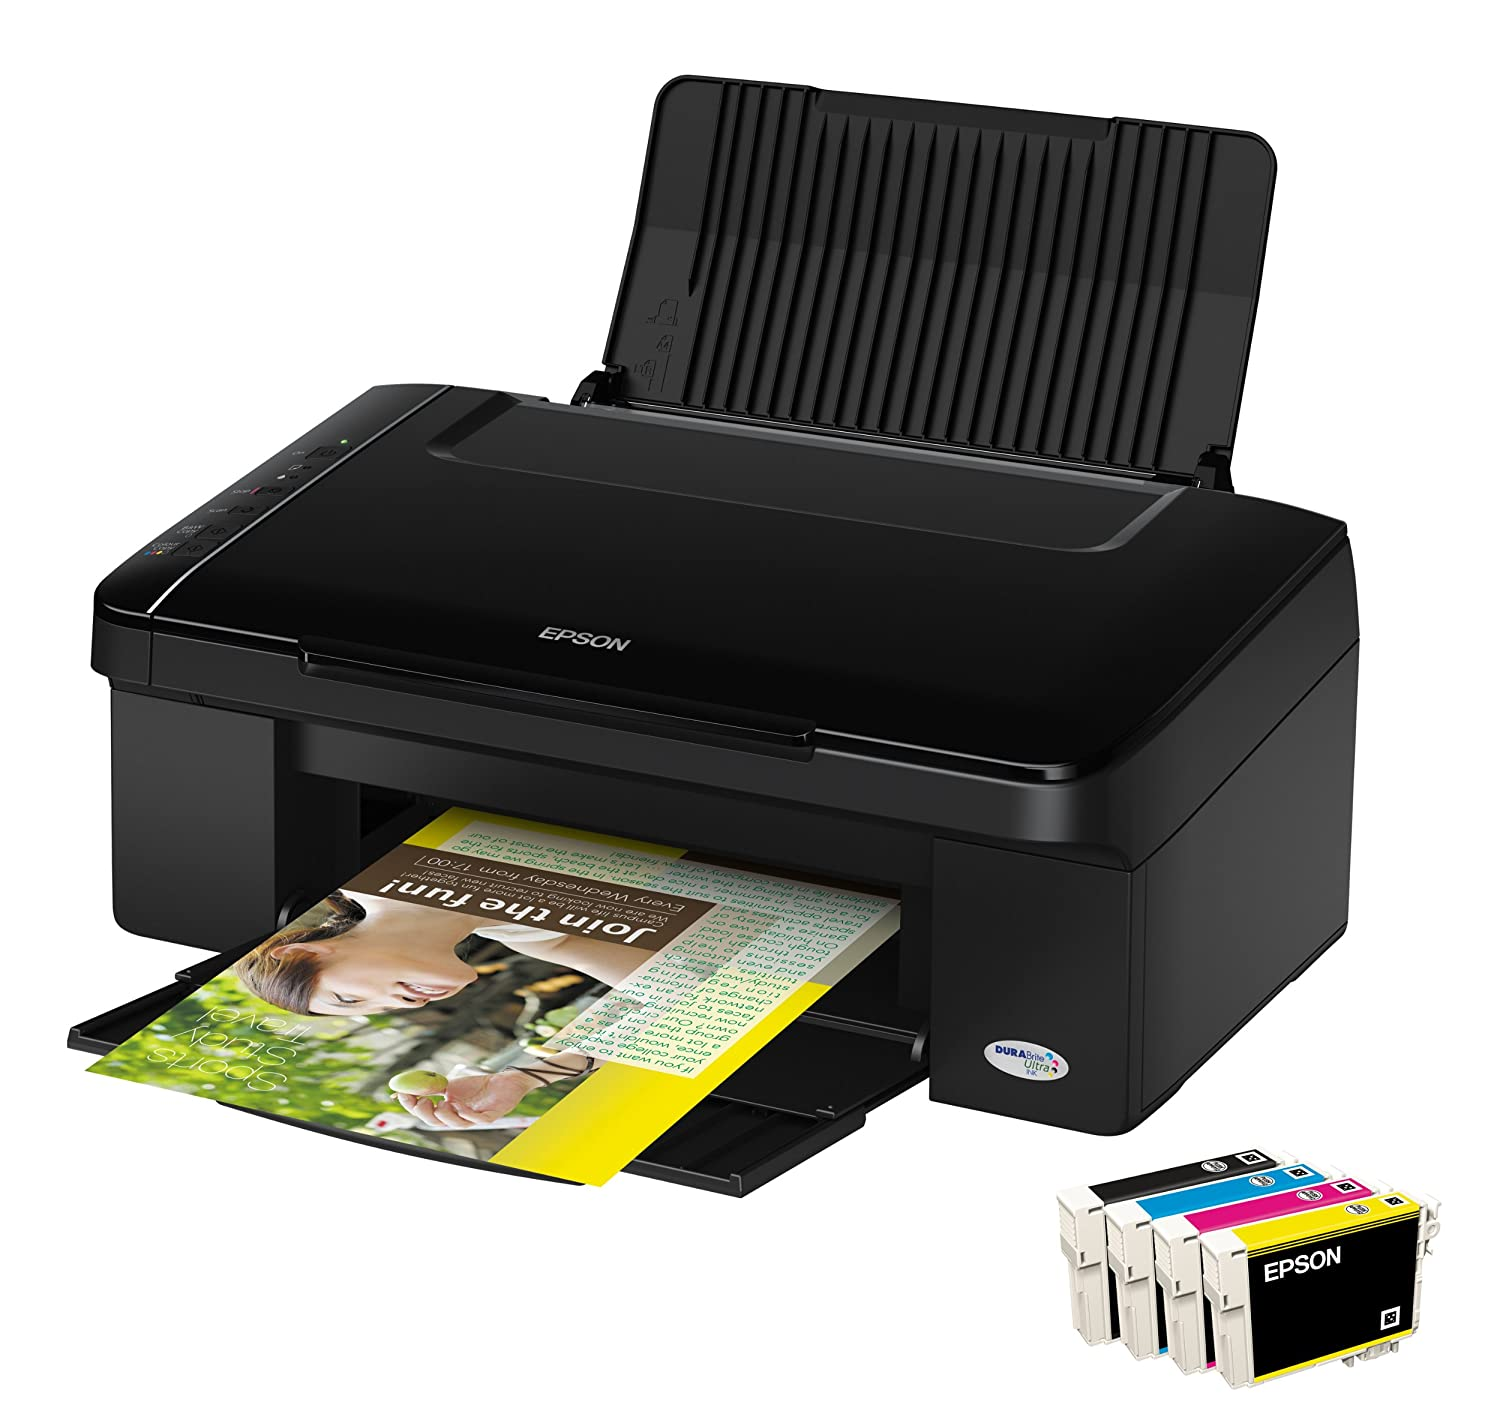 EPSON SX110 SERIES DRIVER FOR WINDOWS 10